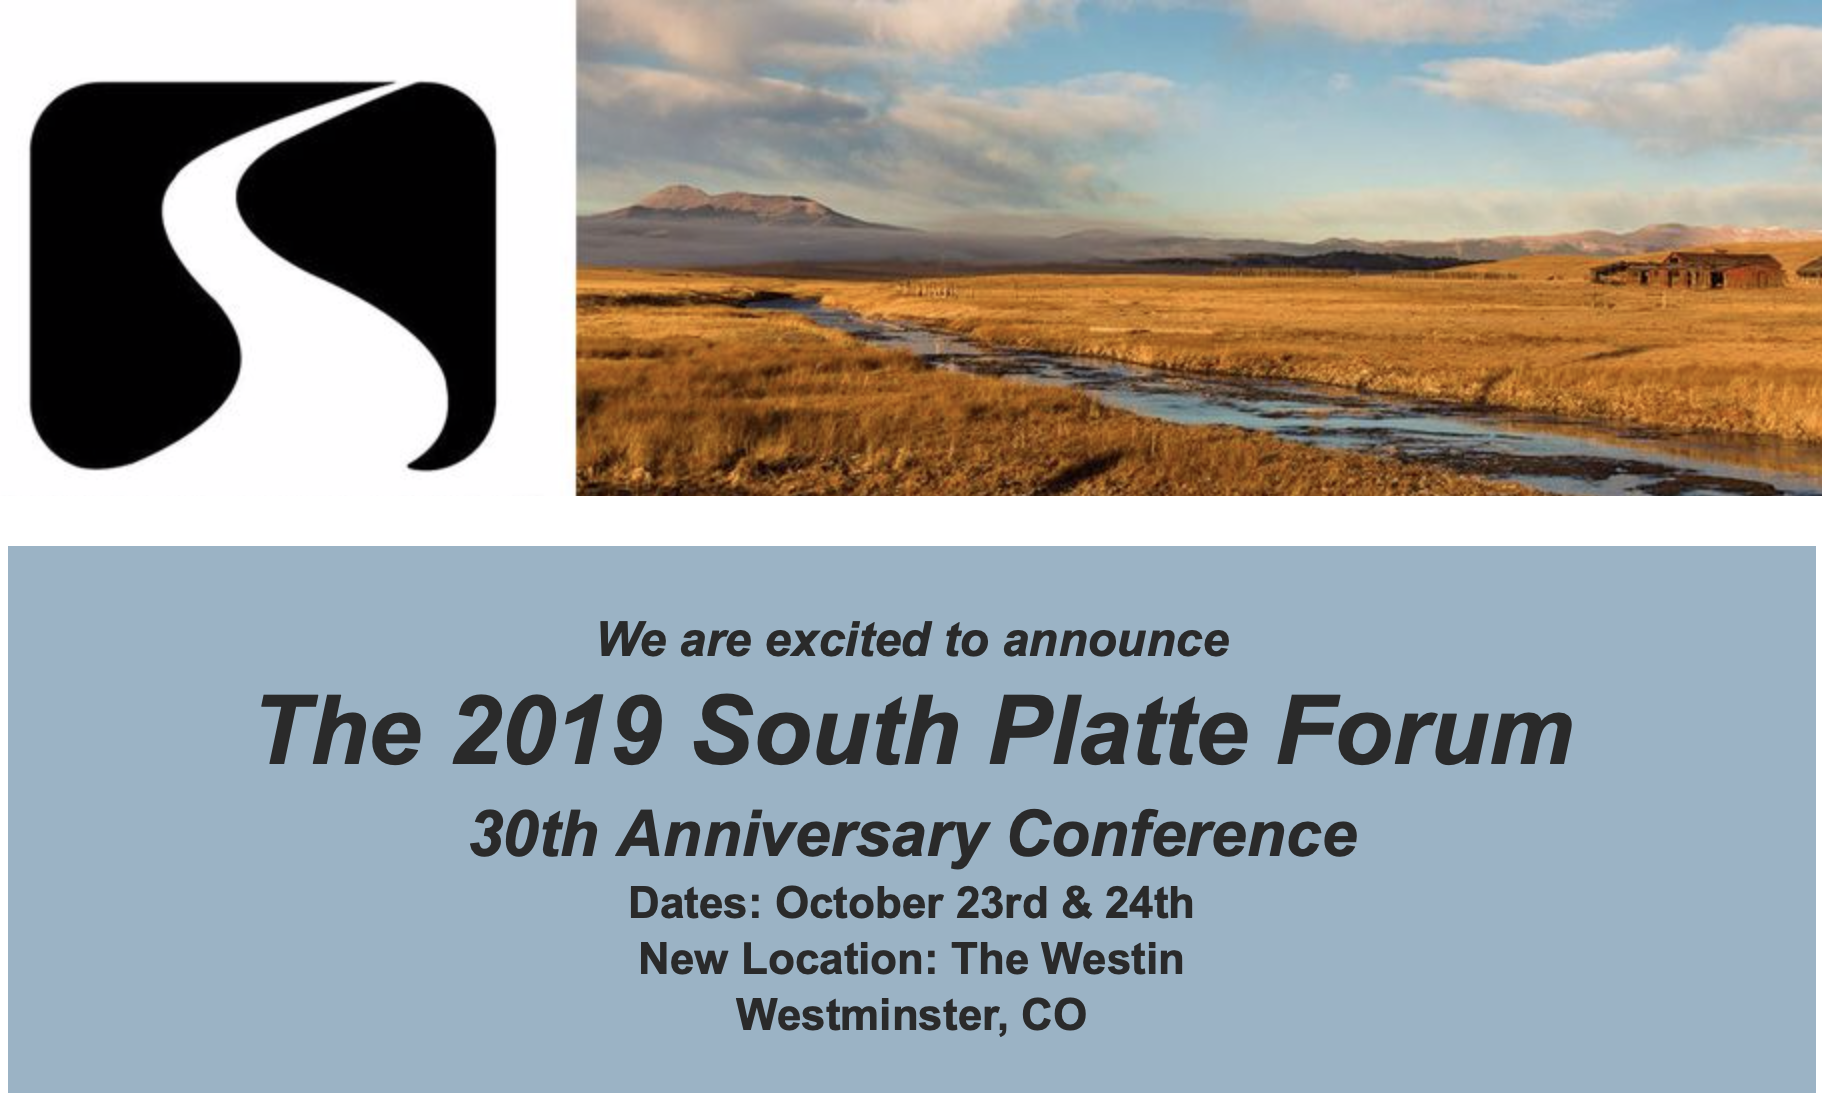 The 2019 #SouthPlatte Forum 30th Anniversary Conference